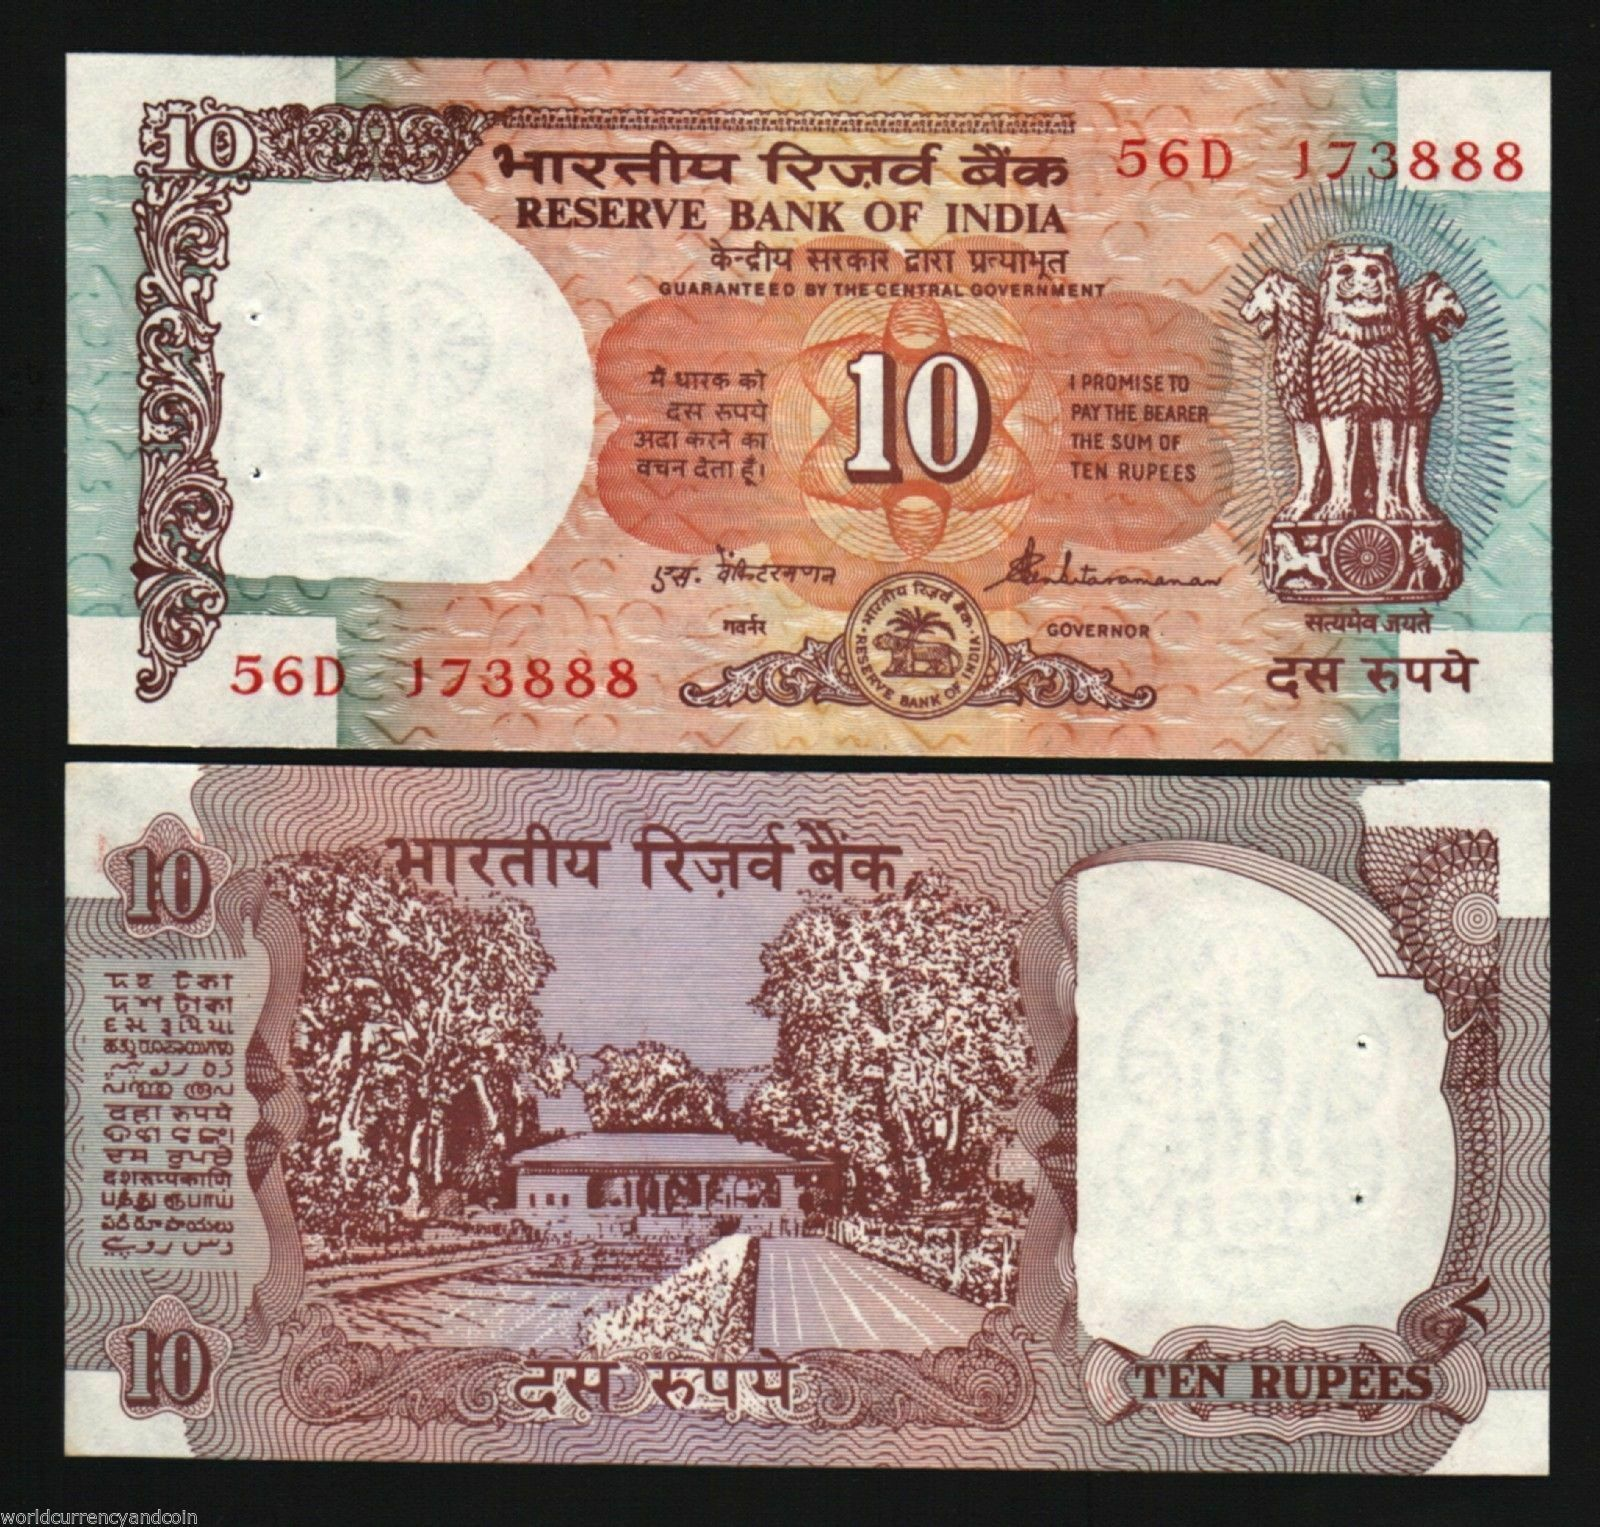 INDIA 10 RUPEES P81 A or B 1970-1975 DEER PEACOCK HORSE UNC SJ// PURI ANIMAL NOTE